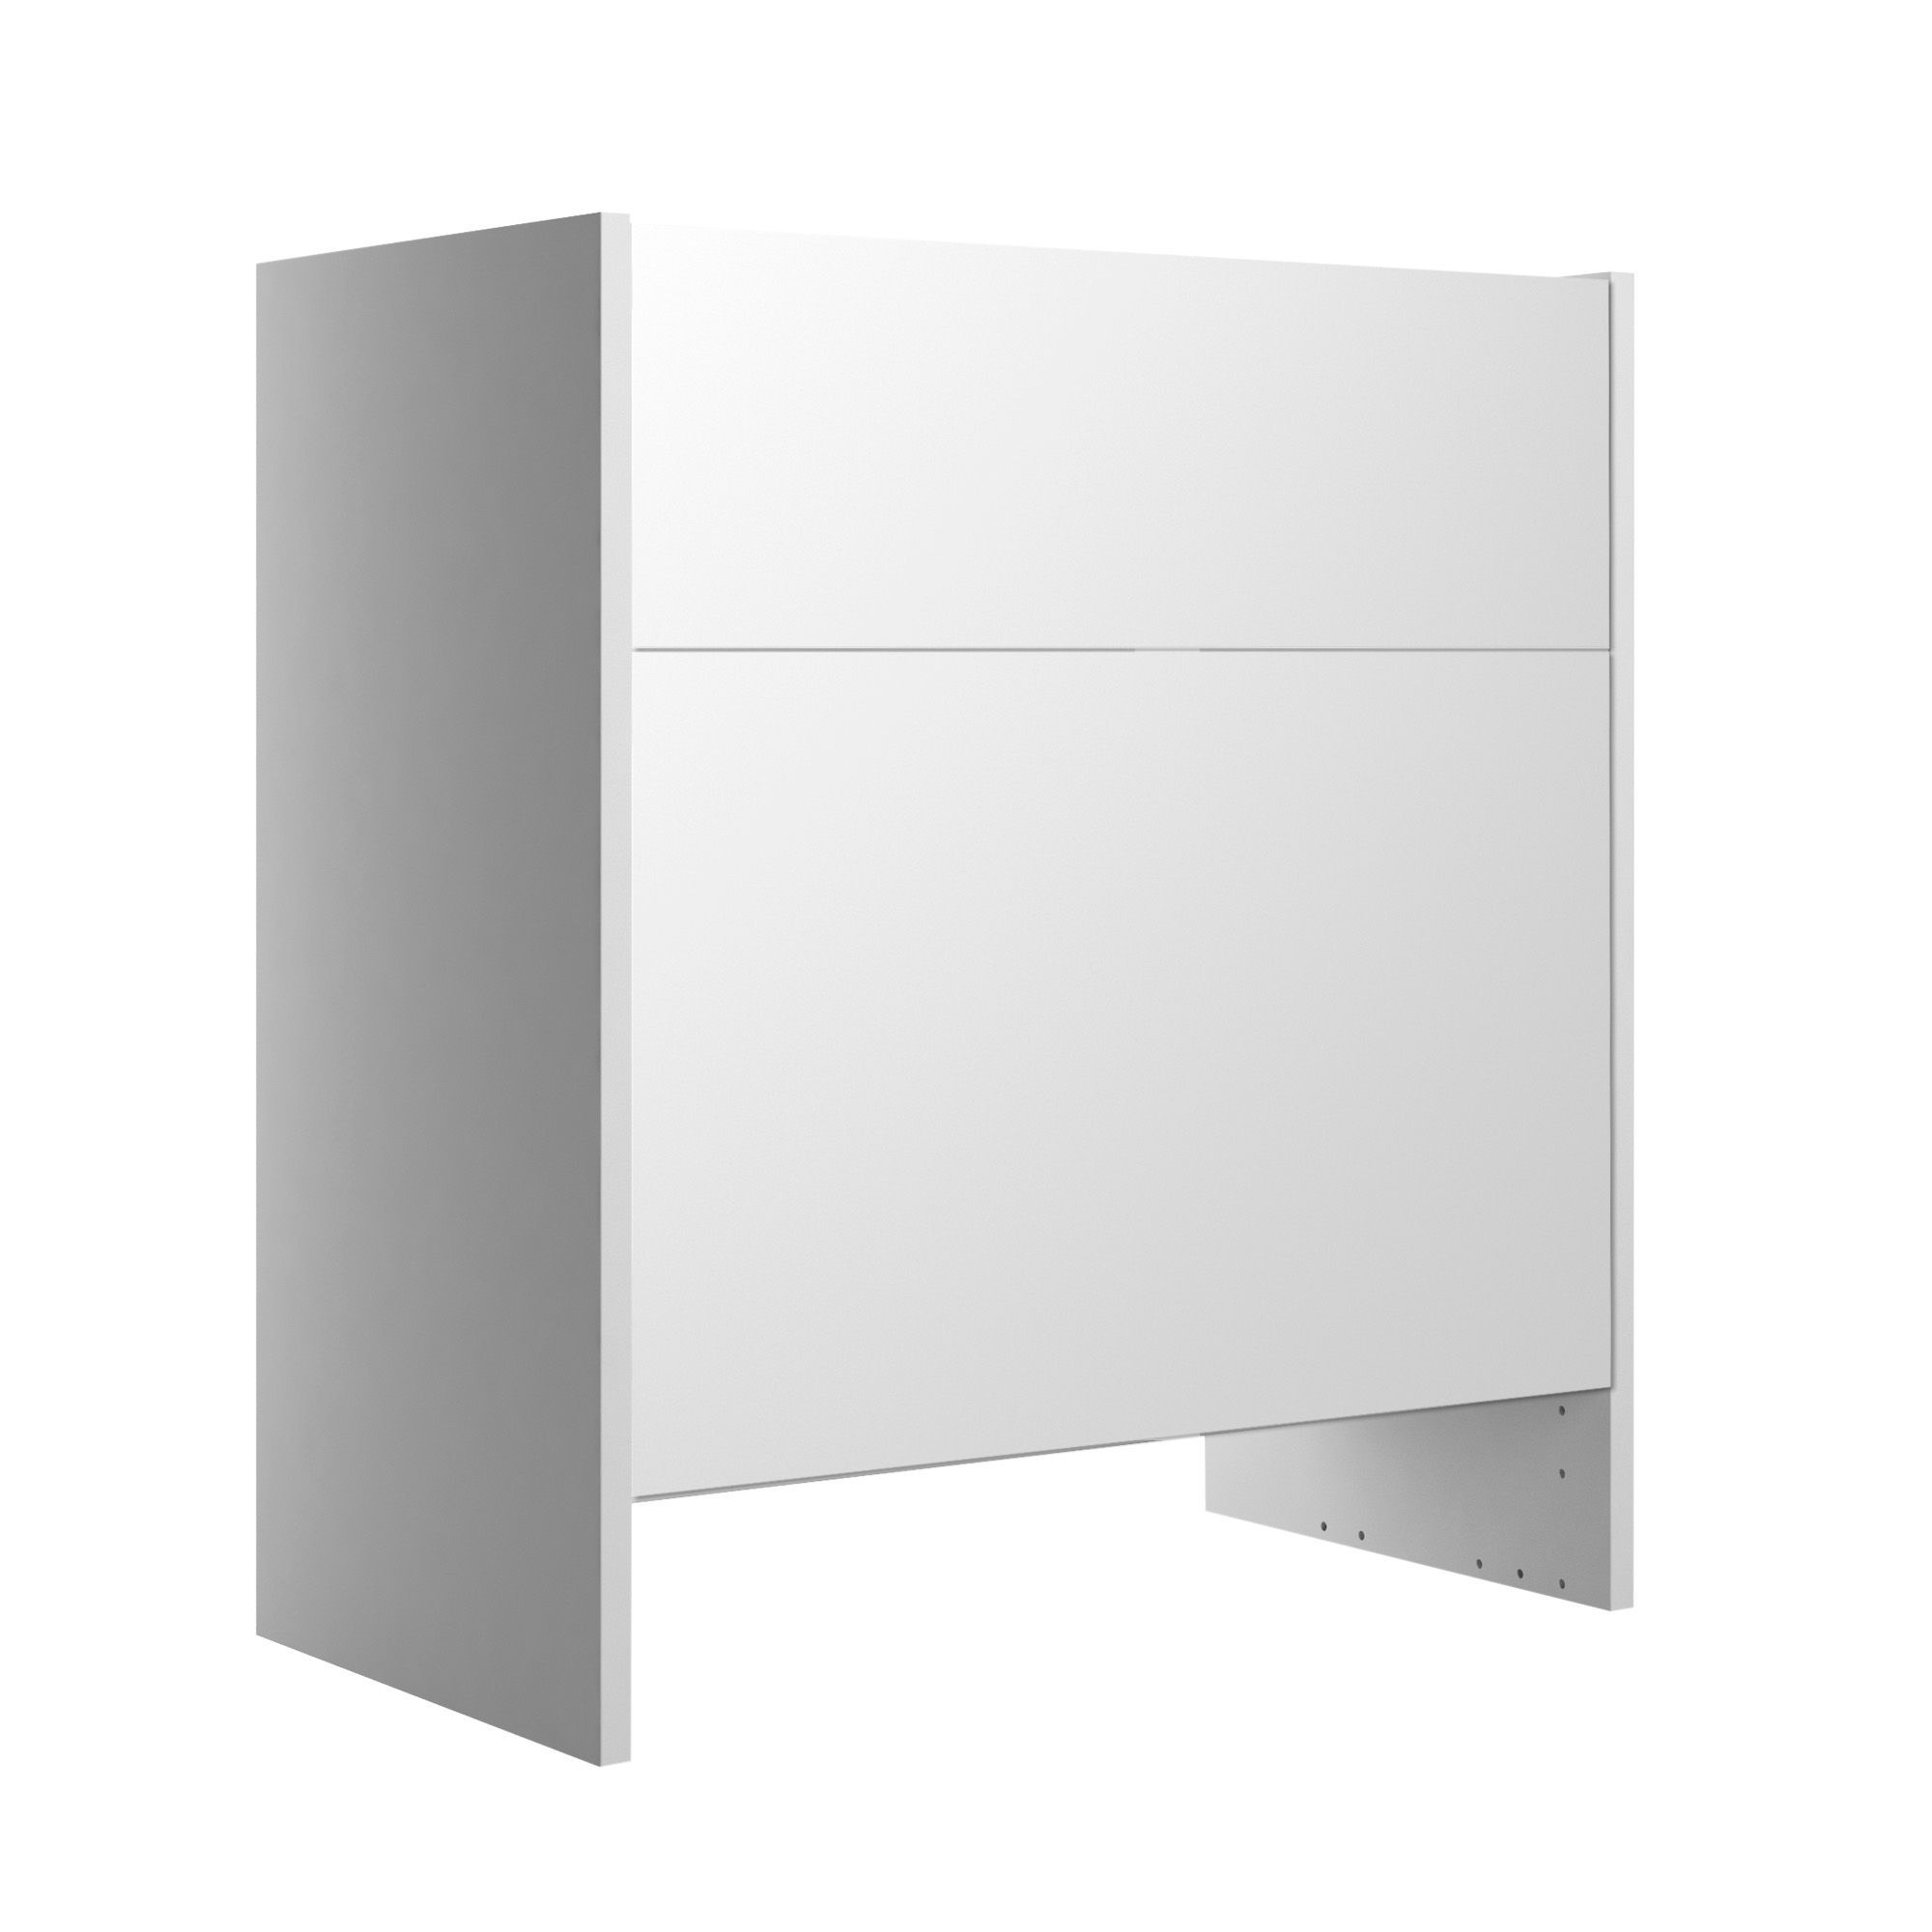 Cooke & Lewis Marletti Gloss White Toilet unit, (W)600mm ...